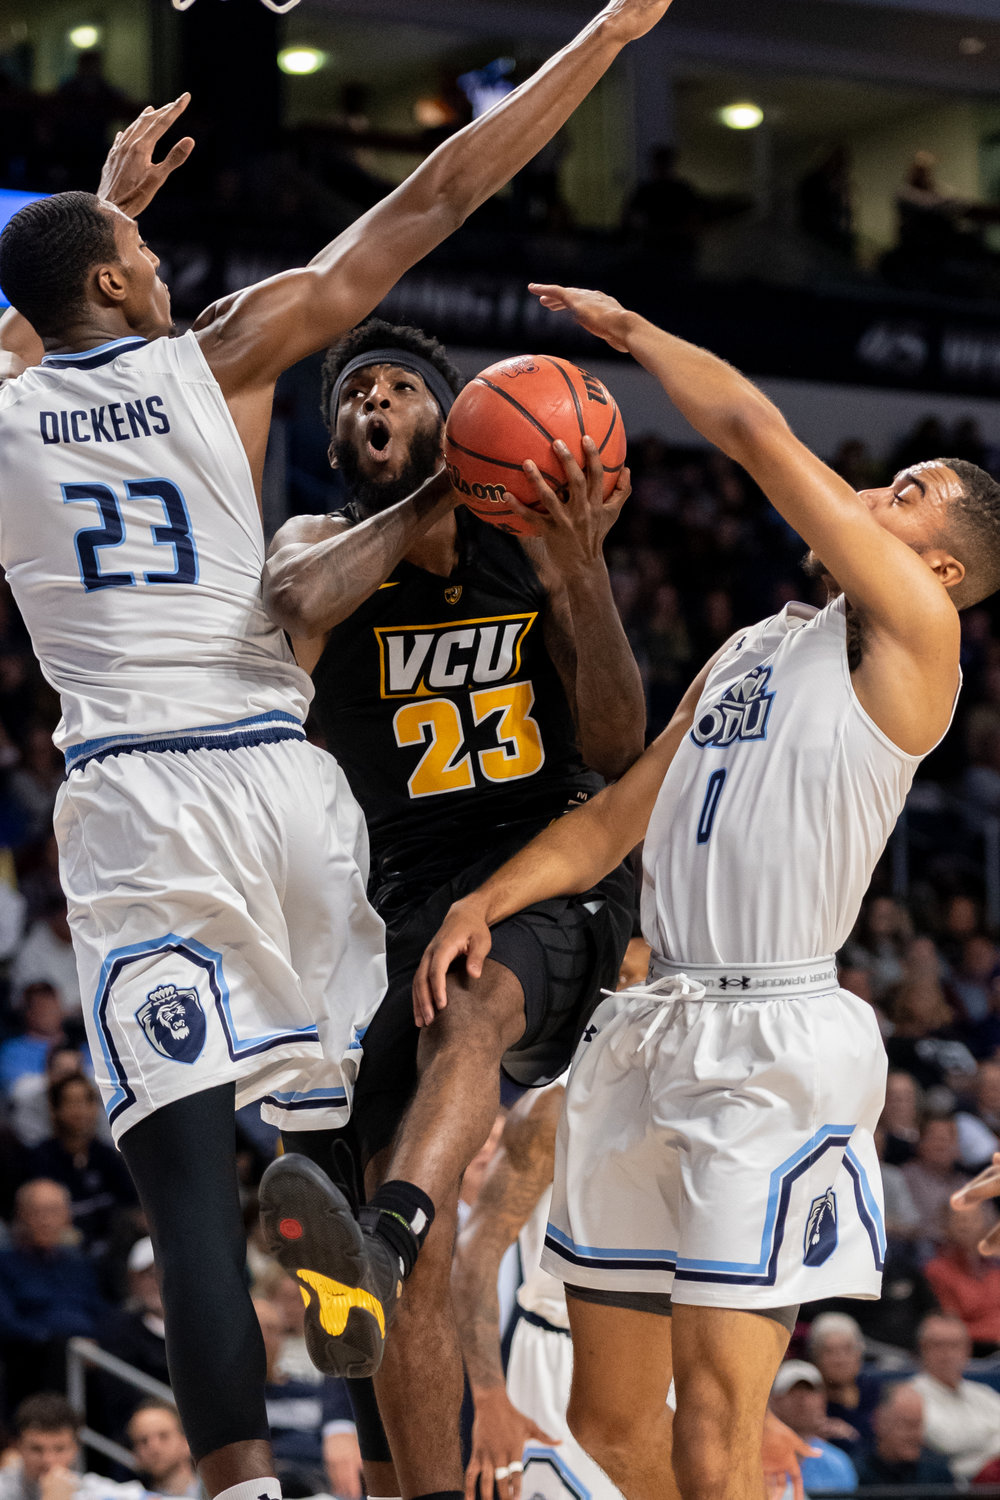 Virginia Commonwealth Rams forward Issac Vann (23) takes a shot against Old Dominion Monarchs forward Dajour Dickens (23) and guard Marquis Godwin (0) during the Wednesday, November 28, 2018 game held at Old Dominion University in Norfolk. Old Dominion defeated VCU 62 to 52.